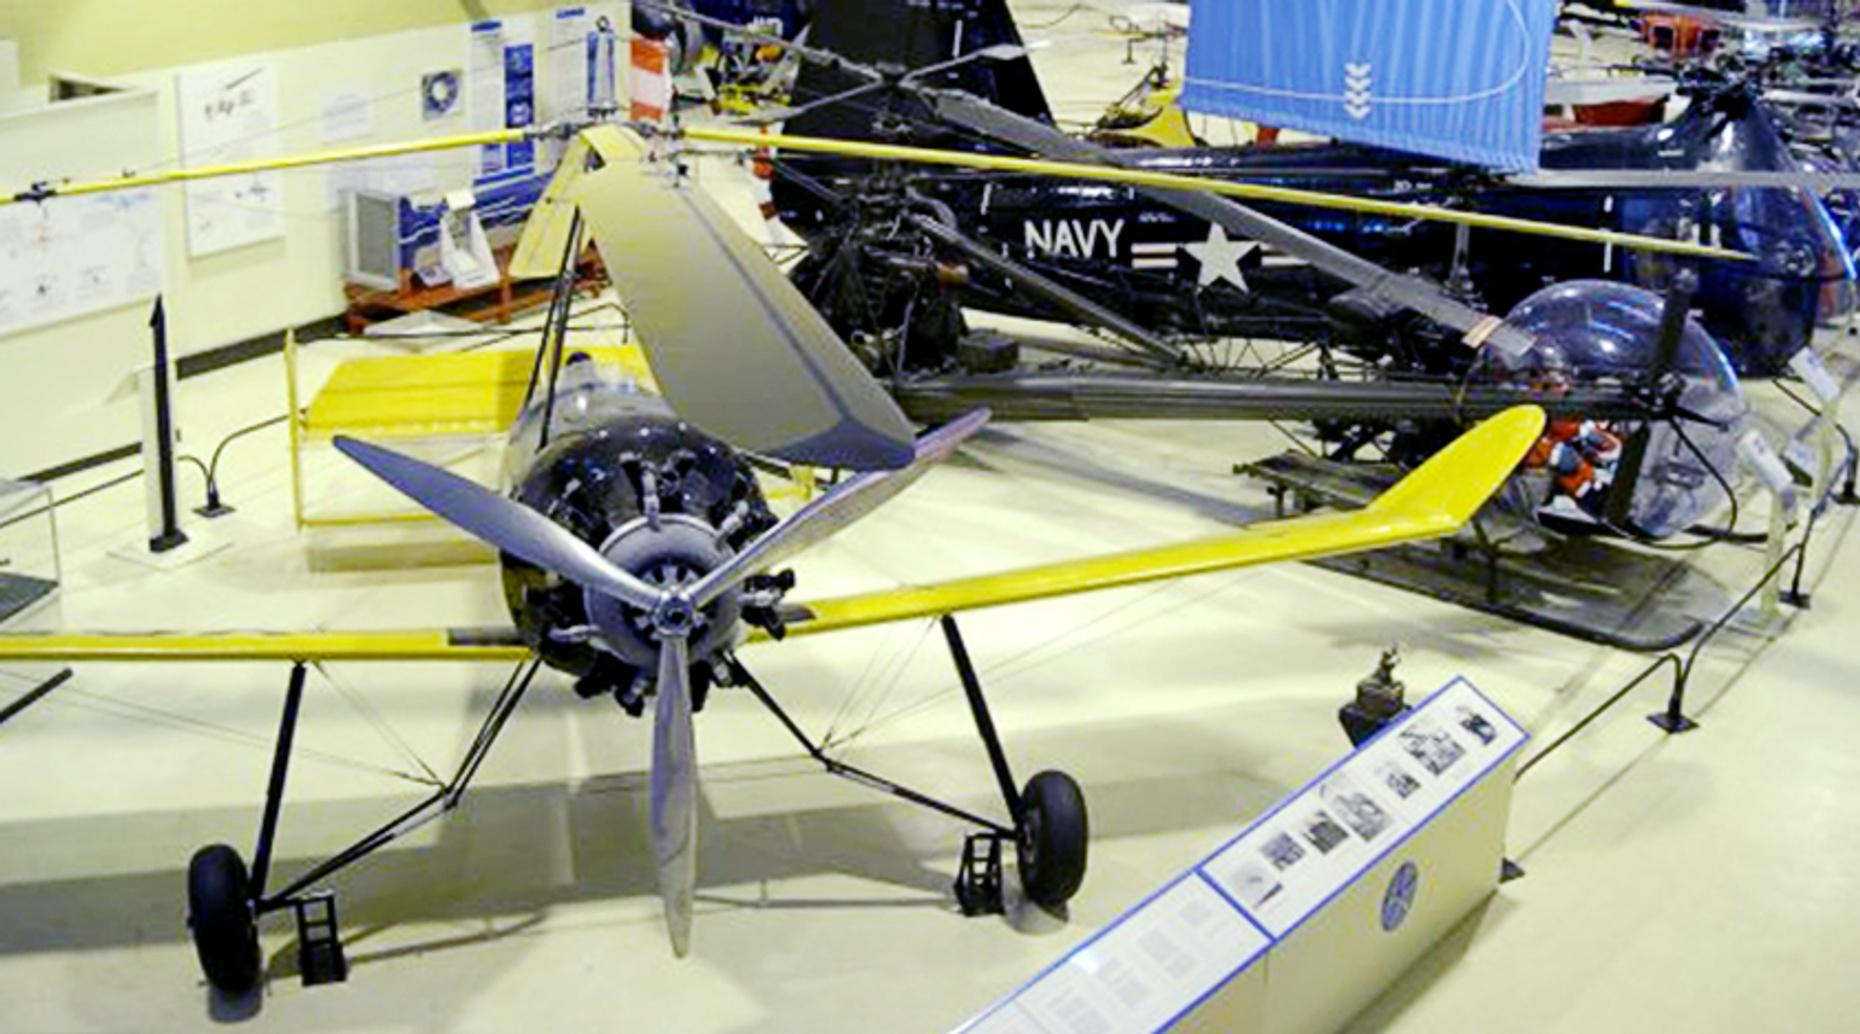 West Chester Helicopter Museum Admission